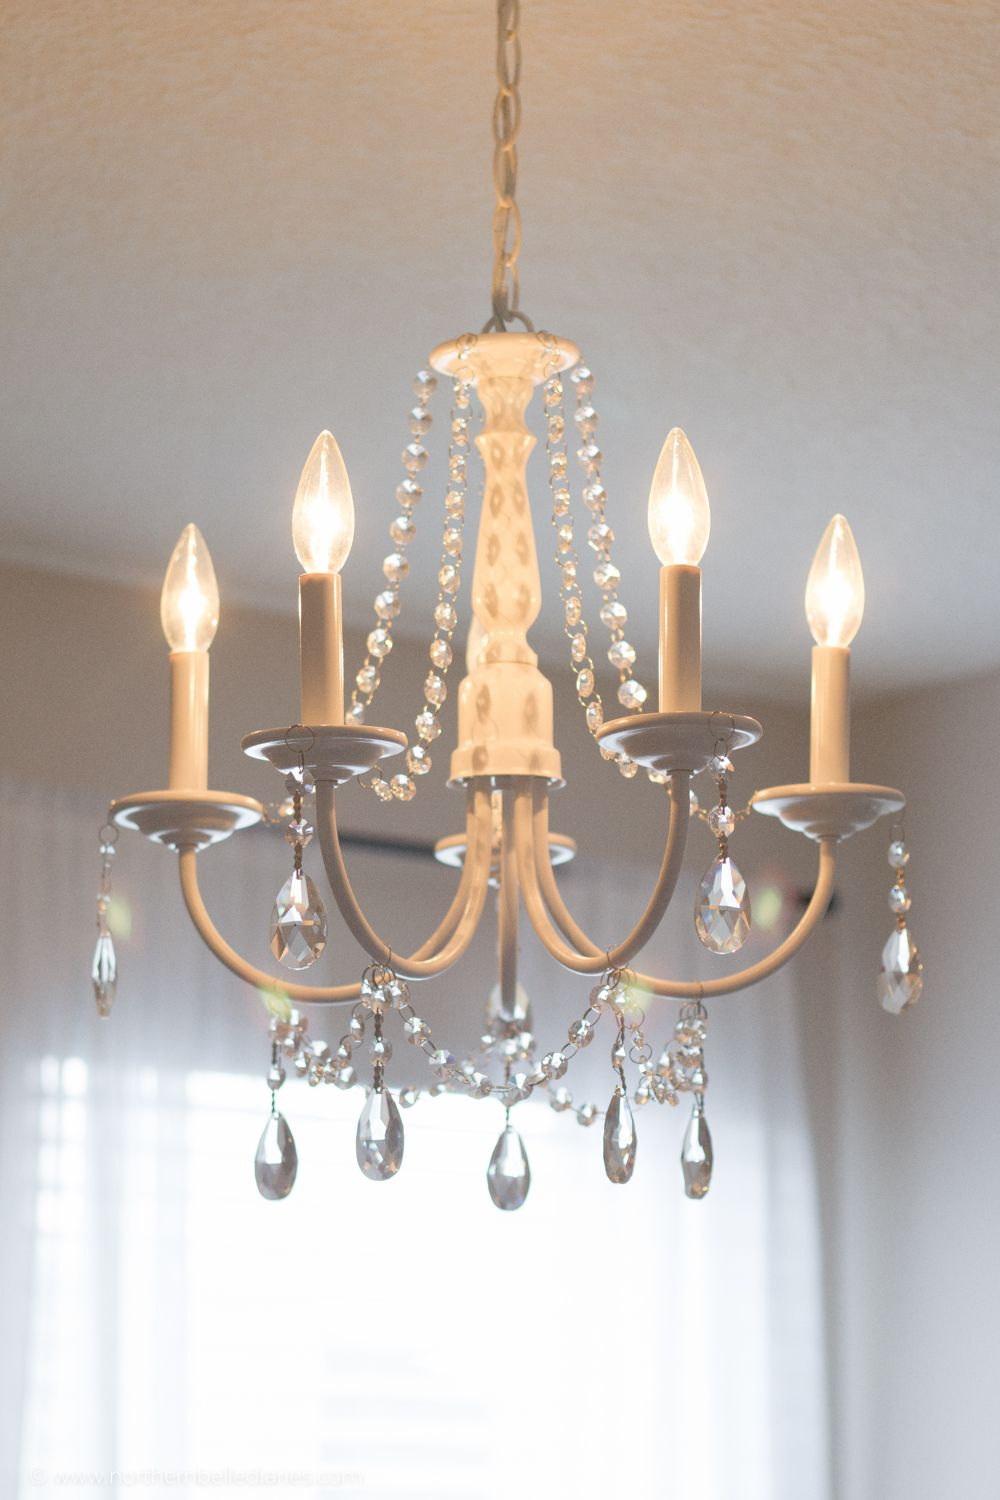 You Can Make Your Own Diy Crystal Chandelier This Site Shows How Easydiy Decor